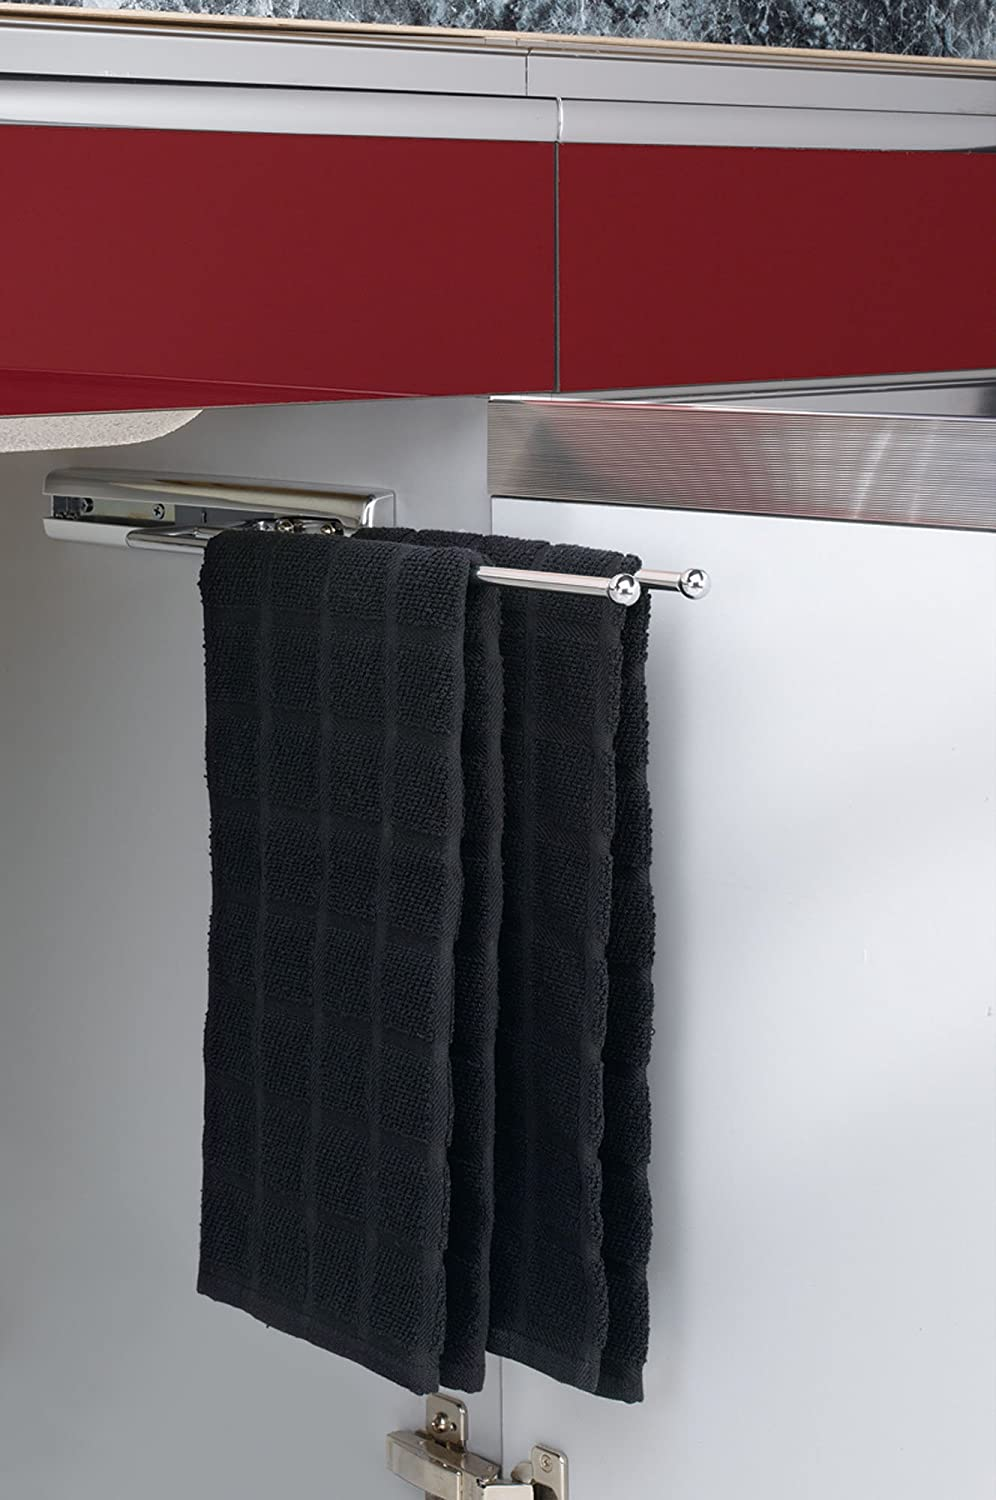 Amazon.com Rev-A-Shelf - 563-51-C - Chrome Under Cabinet 2-Prong Pullout Towel Bar Home u0026 Kitchen & Amazon.com: Rev-A-Shelf - 563-51-C - Chrome Under Cabinet 2-Prong ...